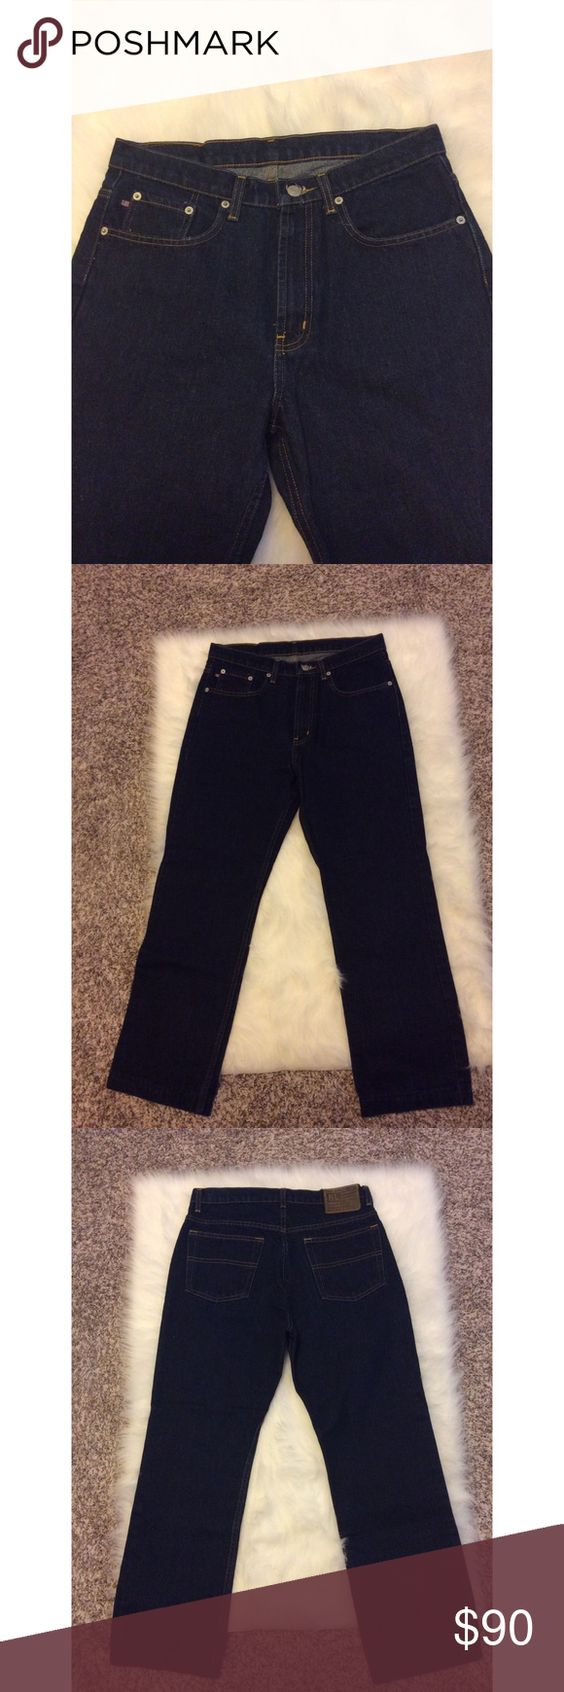 Polo Ralph Lauren Jeans ✨condition: brand new w/o tags ✨worn? no ✨style: 67 bootcut jean ✨color: dark wash ✨rise: classic ✨material: 100% cotton ✨women's size 10 ✨measurements: inseam: 27 Polo by Ralph Lauren Jeans Boot Cut